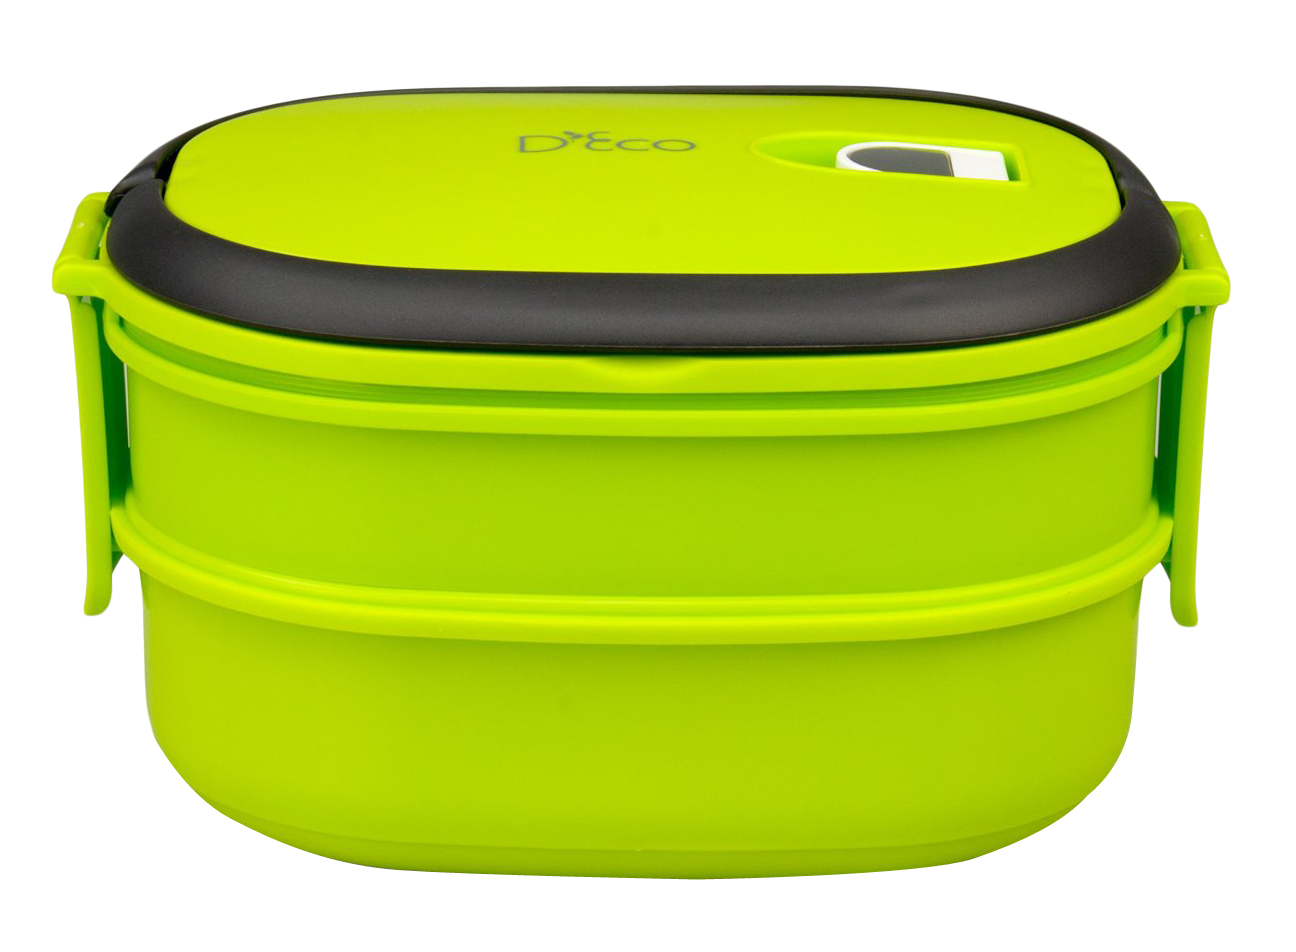 Lunch Box PNG - 16265